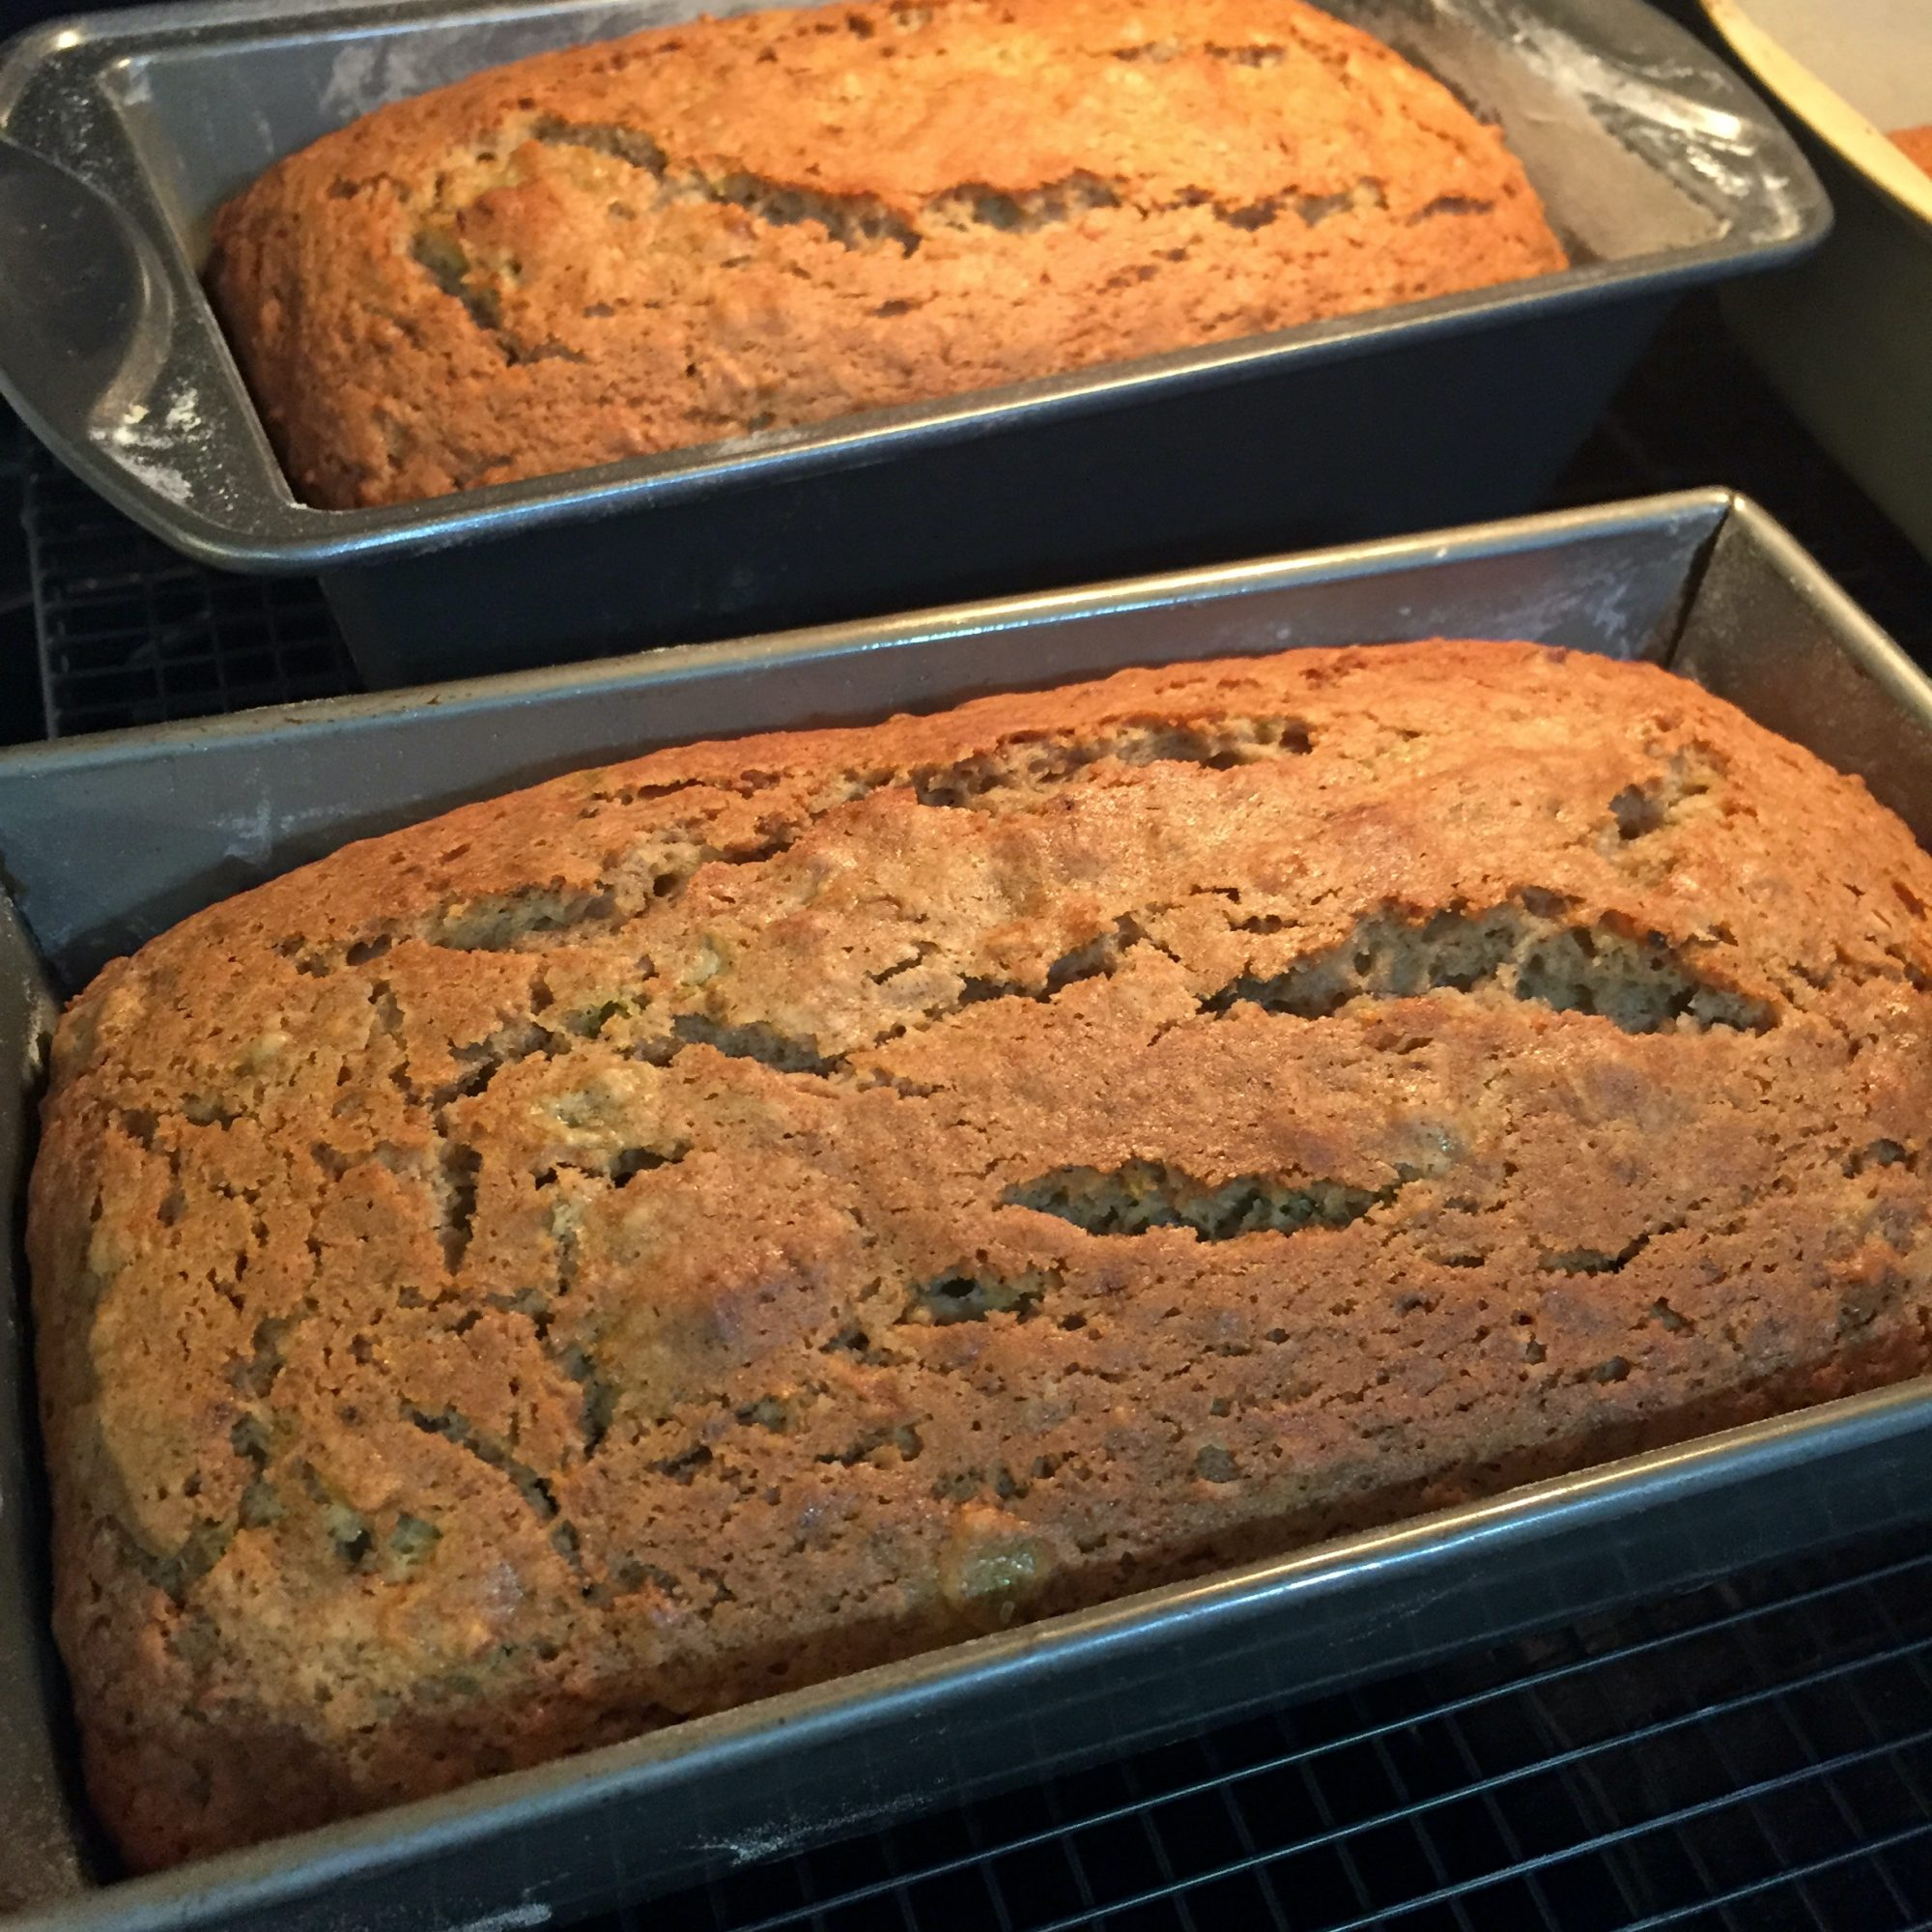 Two loaves of Green Tomato Bread